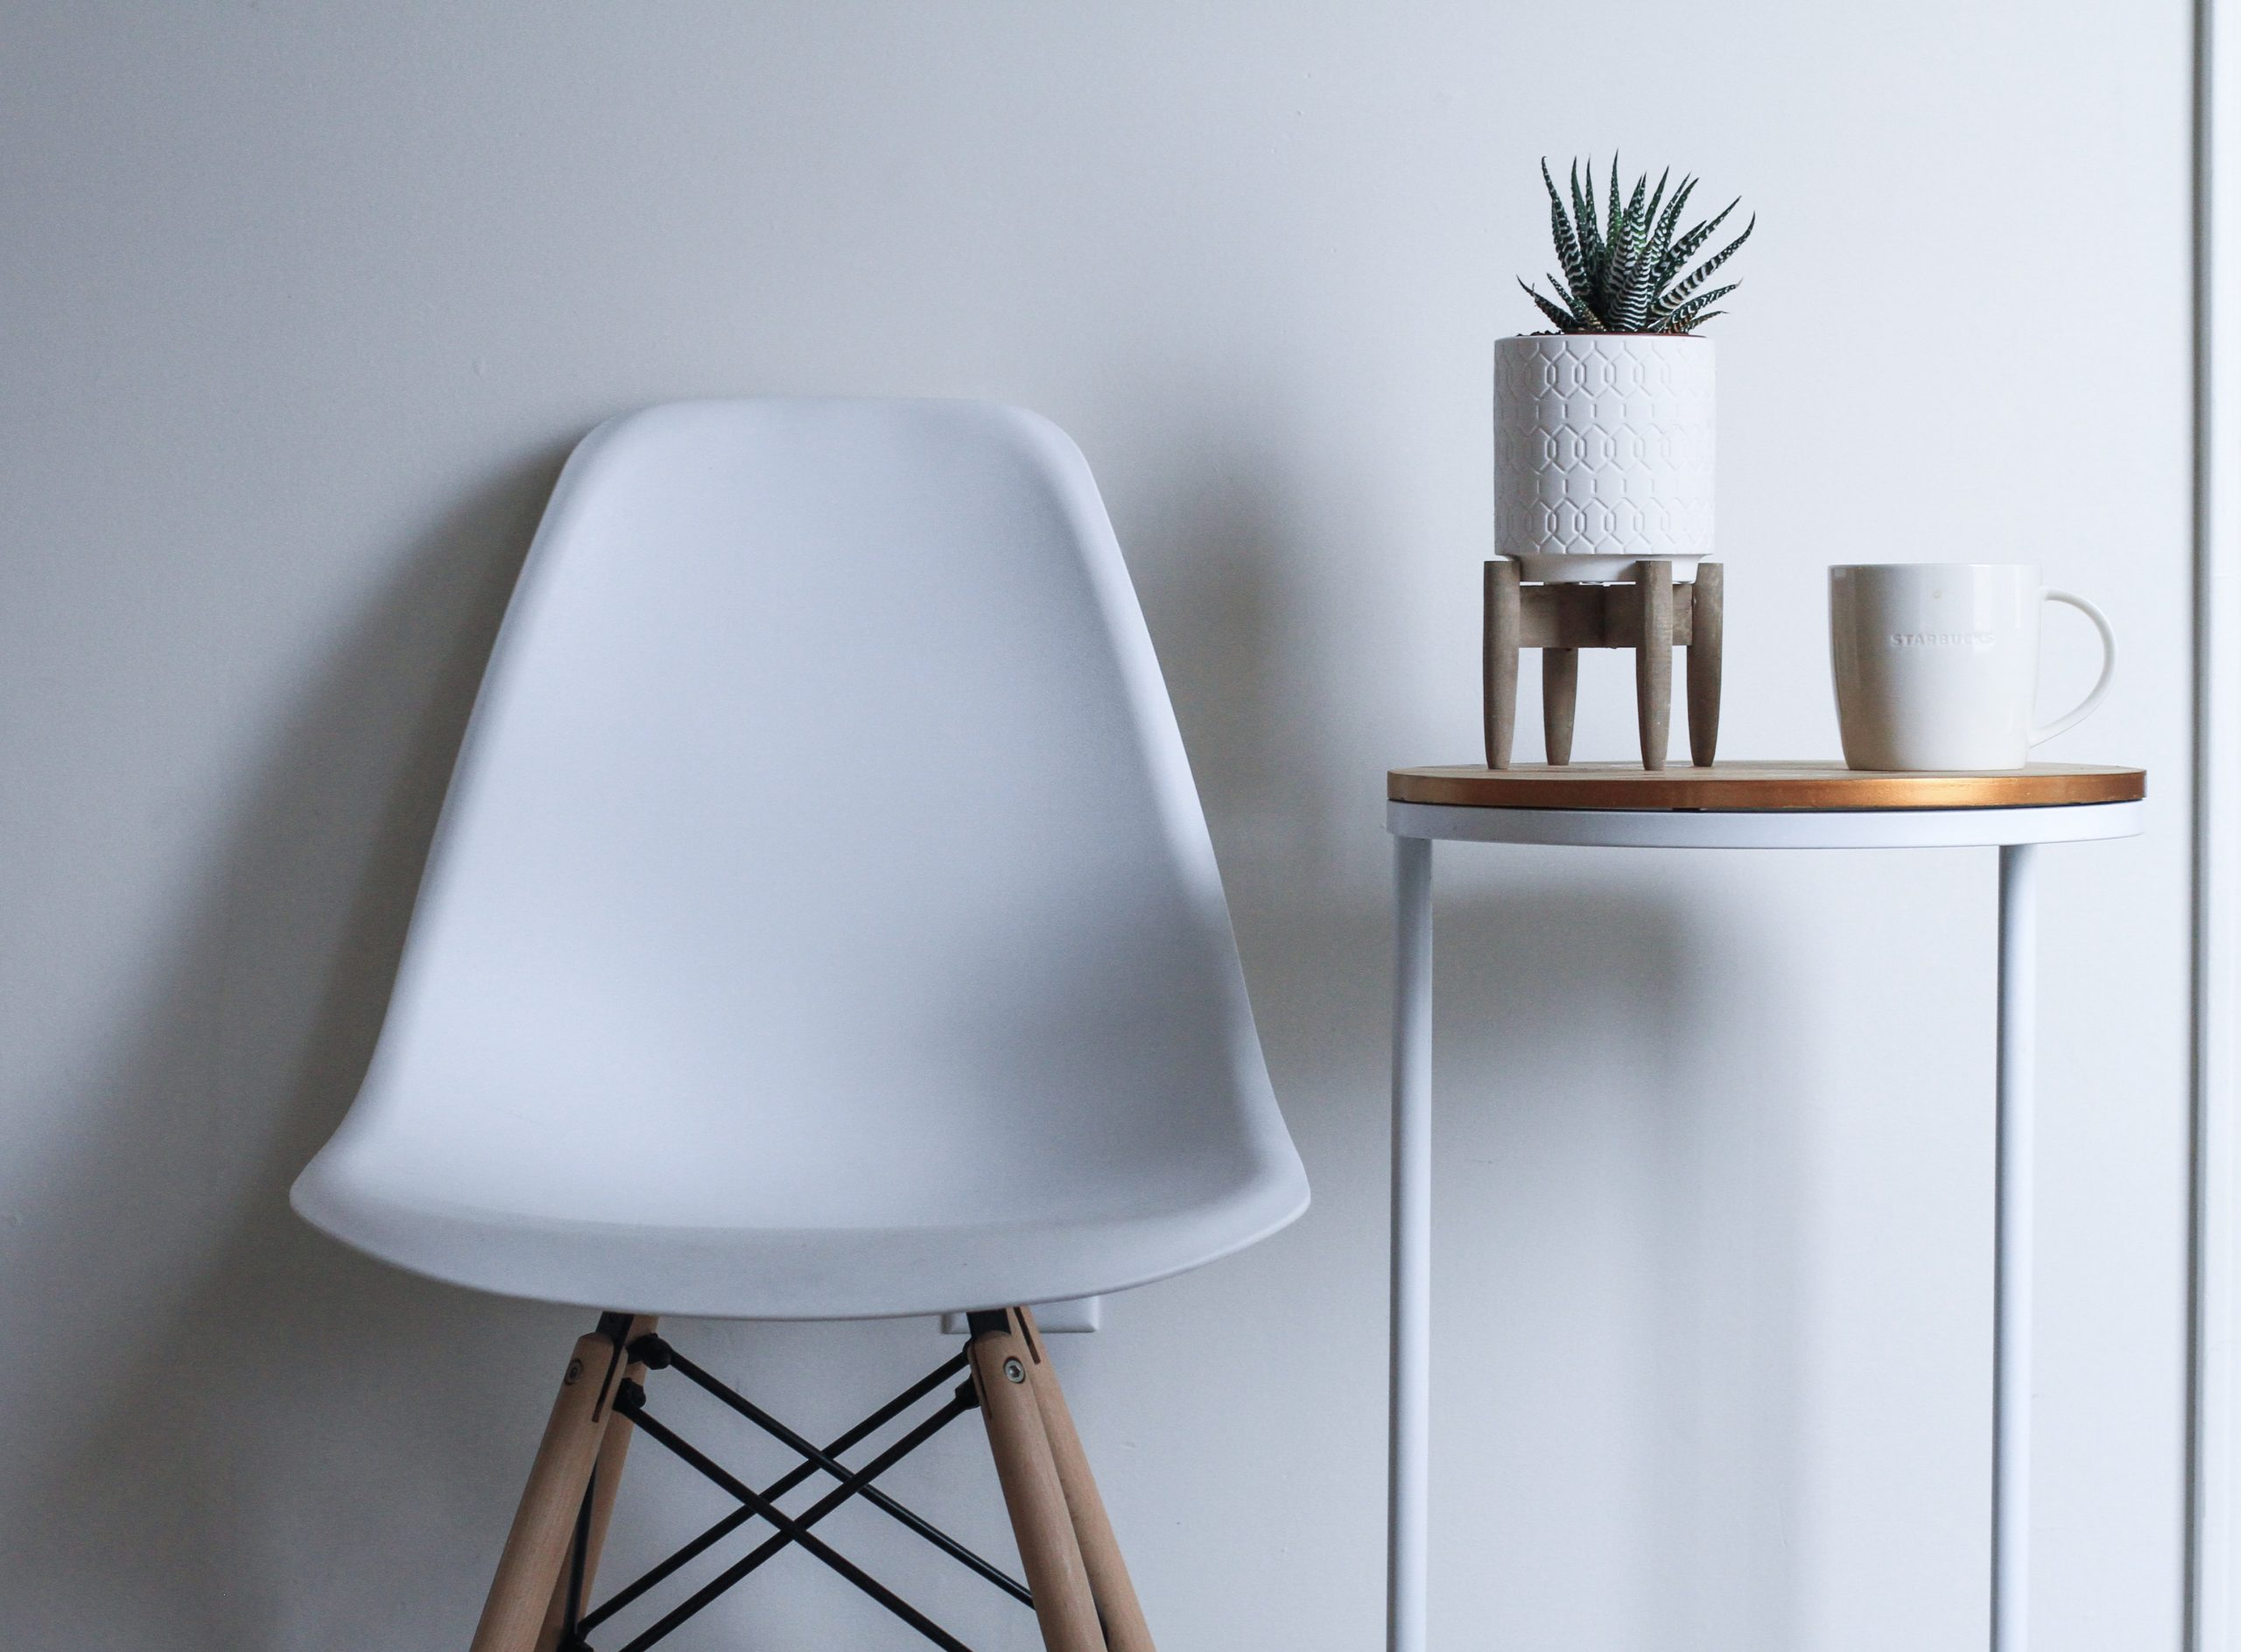 White chair and plant